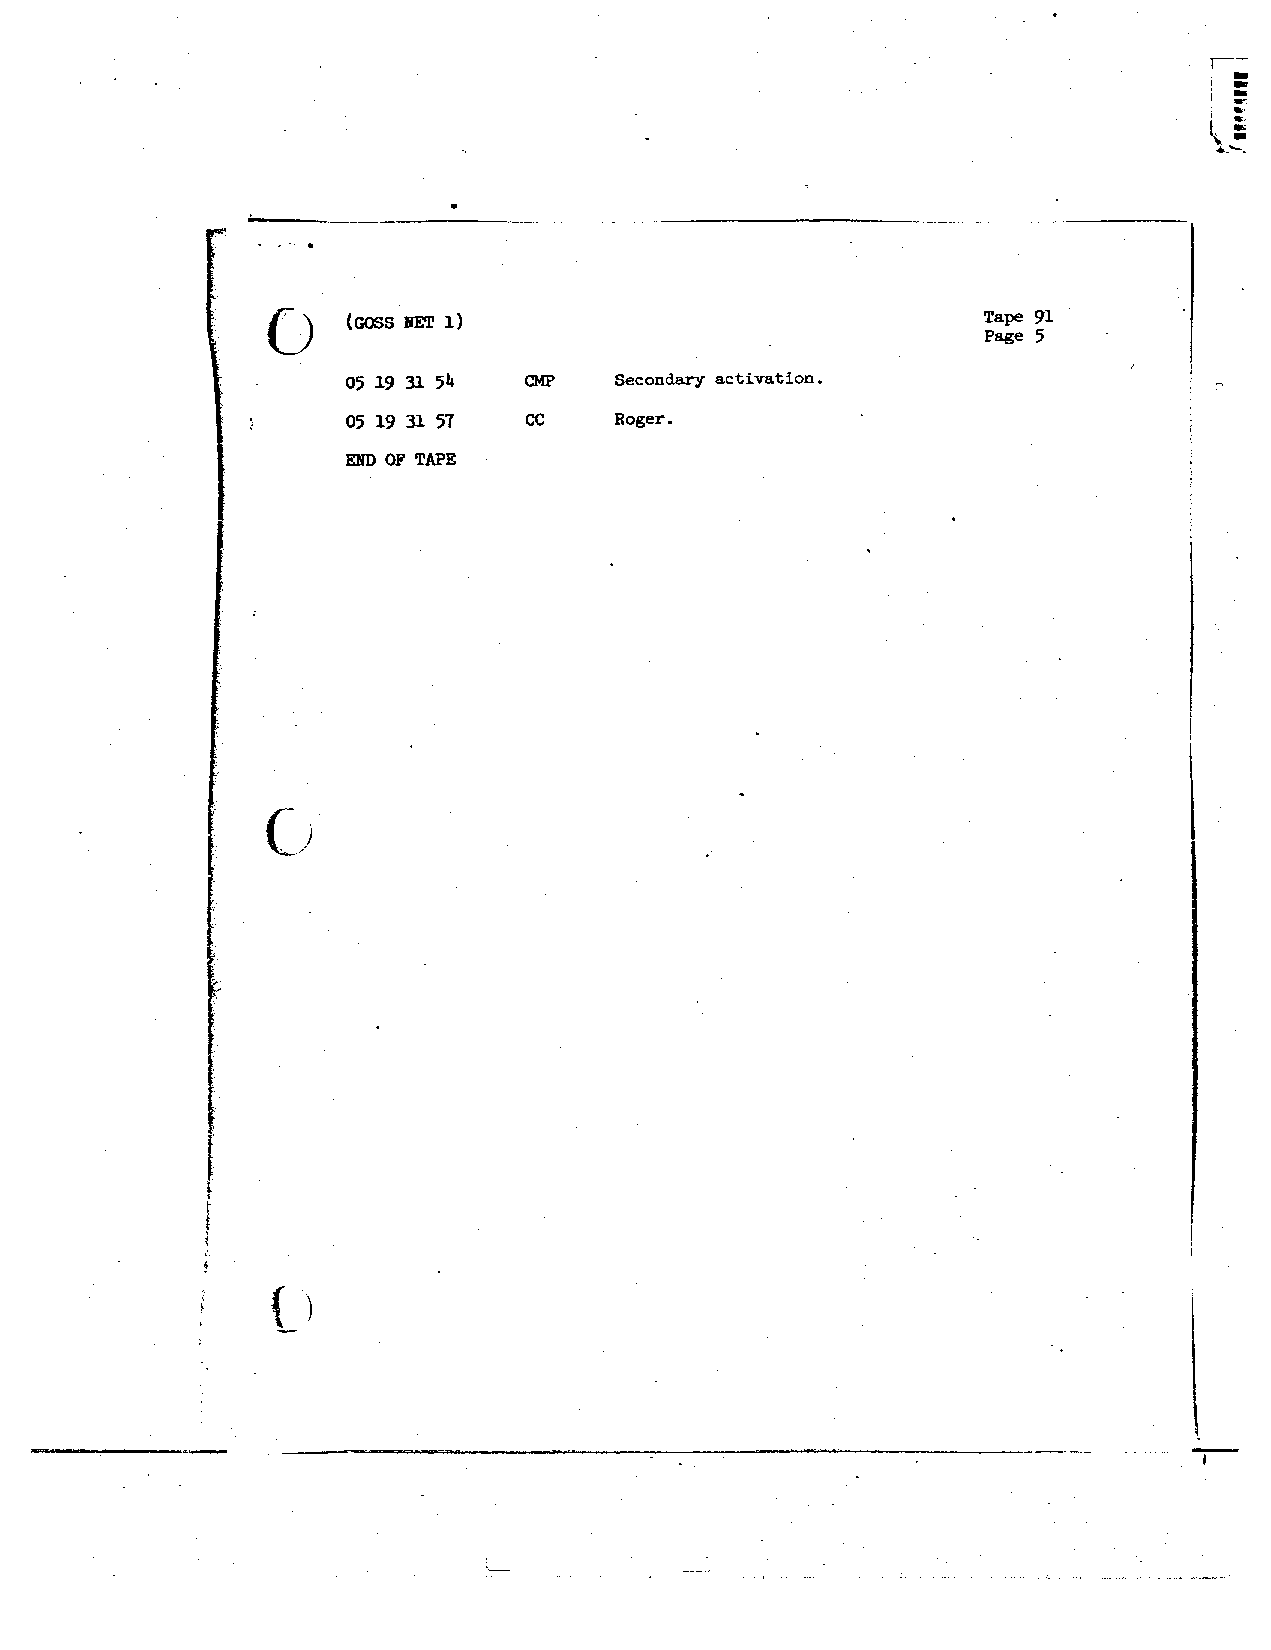 Page 730 of Apollo 8's original transcript